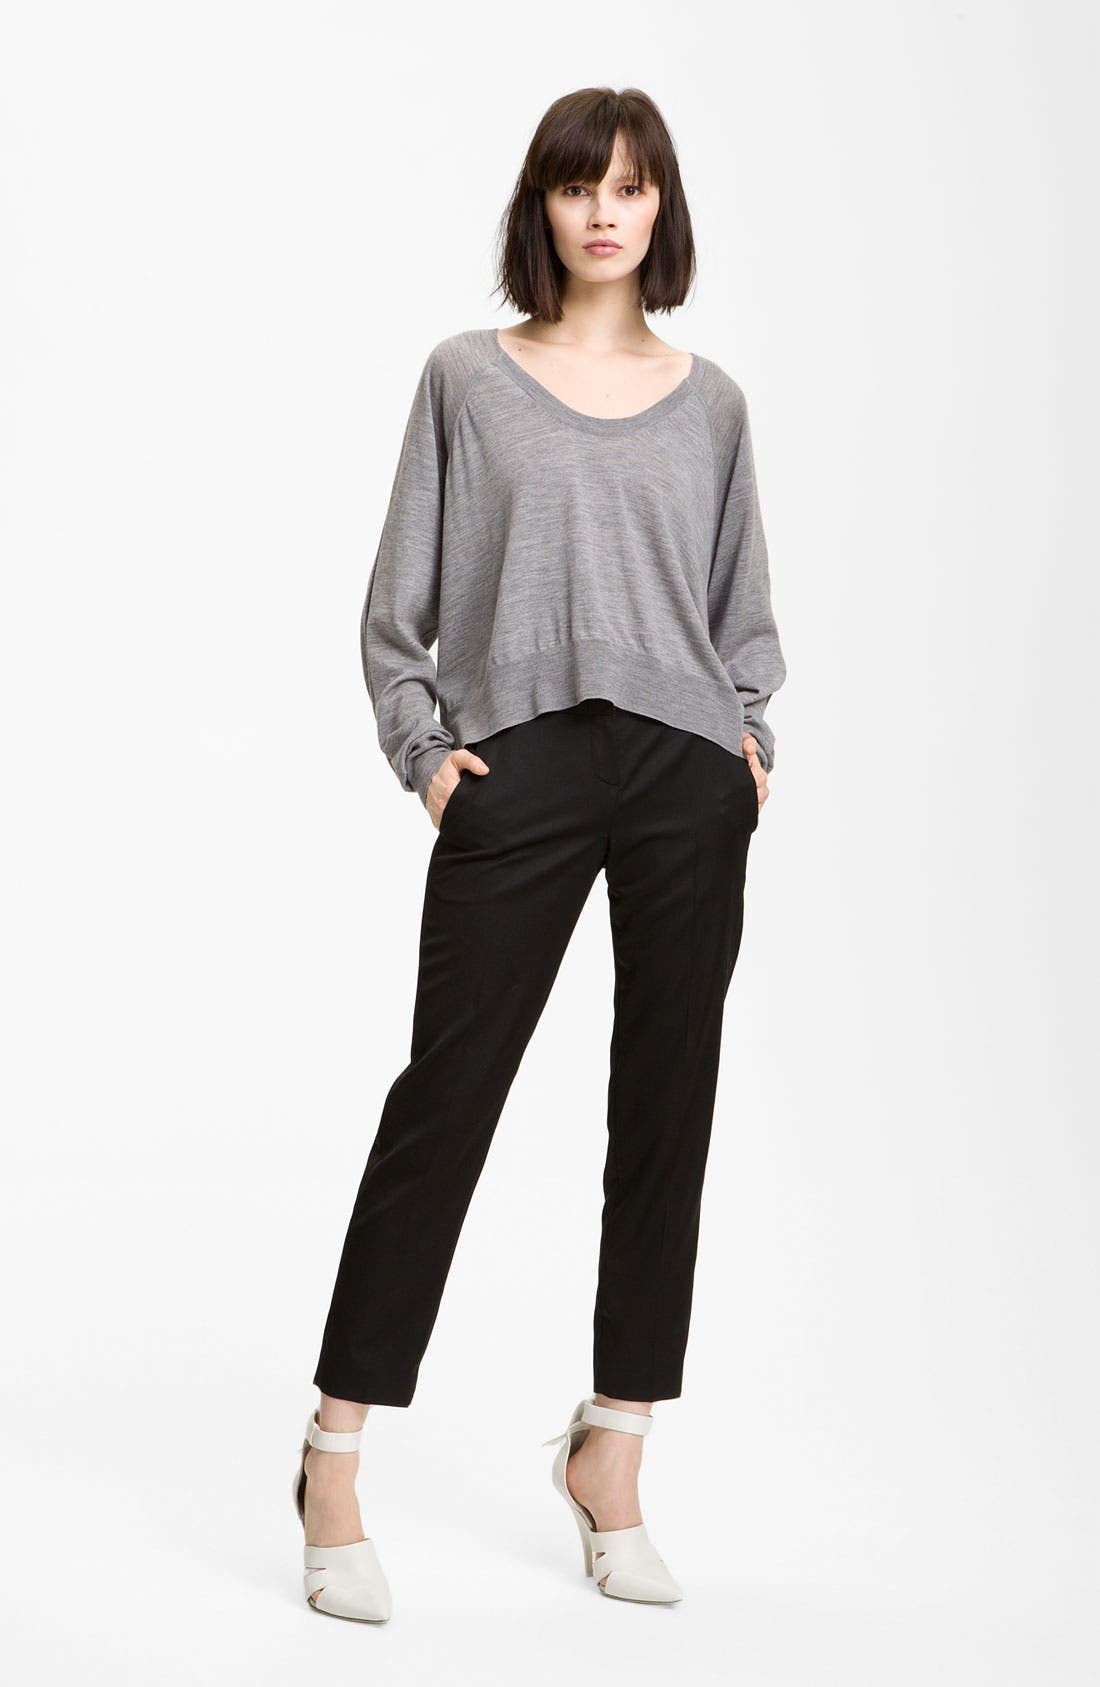 Main Image - Alexander Wang Crop Merino Wool Top